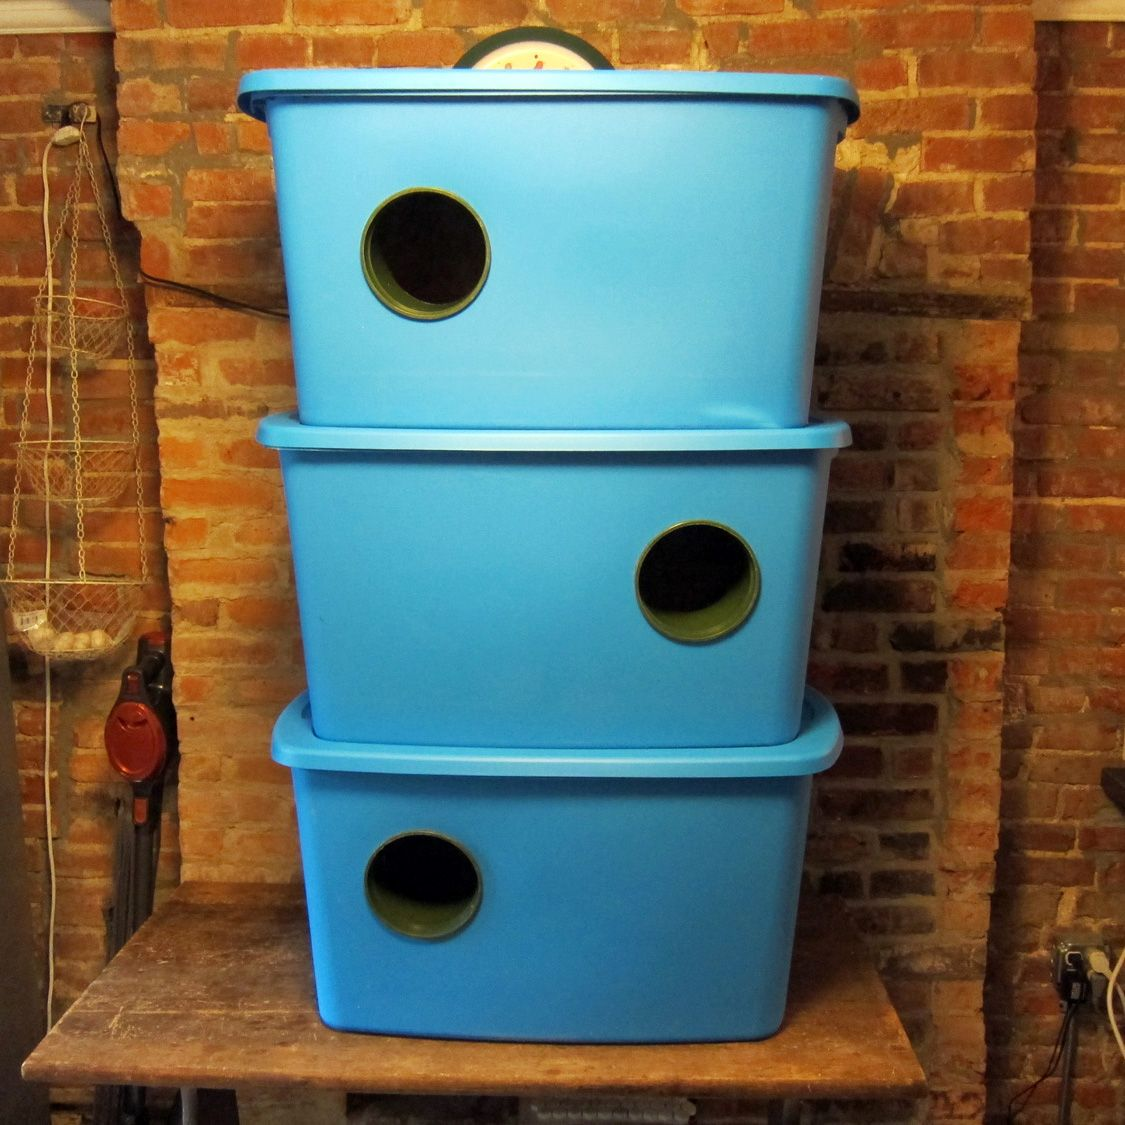 Do It Yourself Winter Feral Cat Shelter Build Instructions  A great way to  keep feral cats warm  safe and fed during the harsh winter months DIY Outdoor Cat Shelter     Random things I like   Pinterest  . Outdoor Cat House Winter Warmer. Home Design Ideas